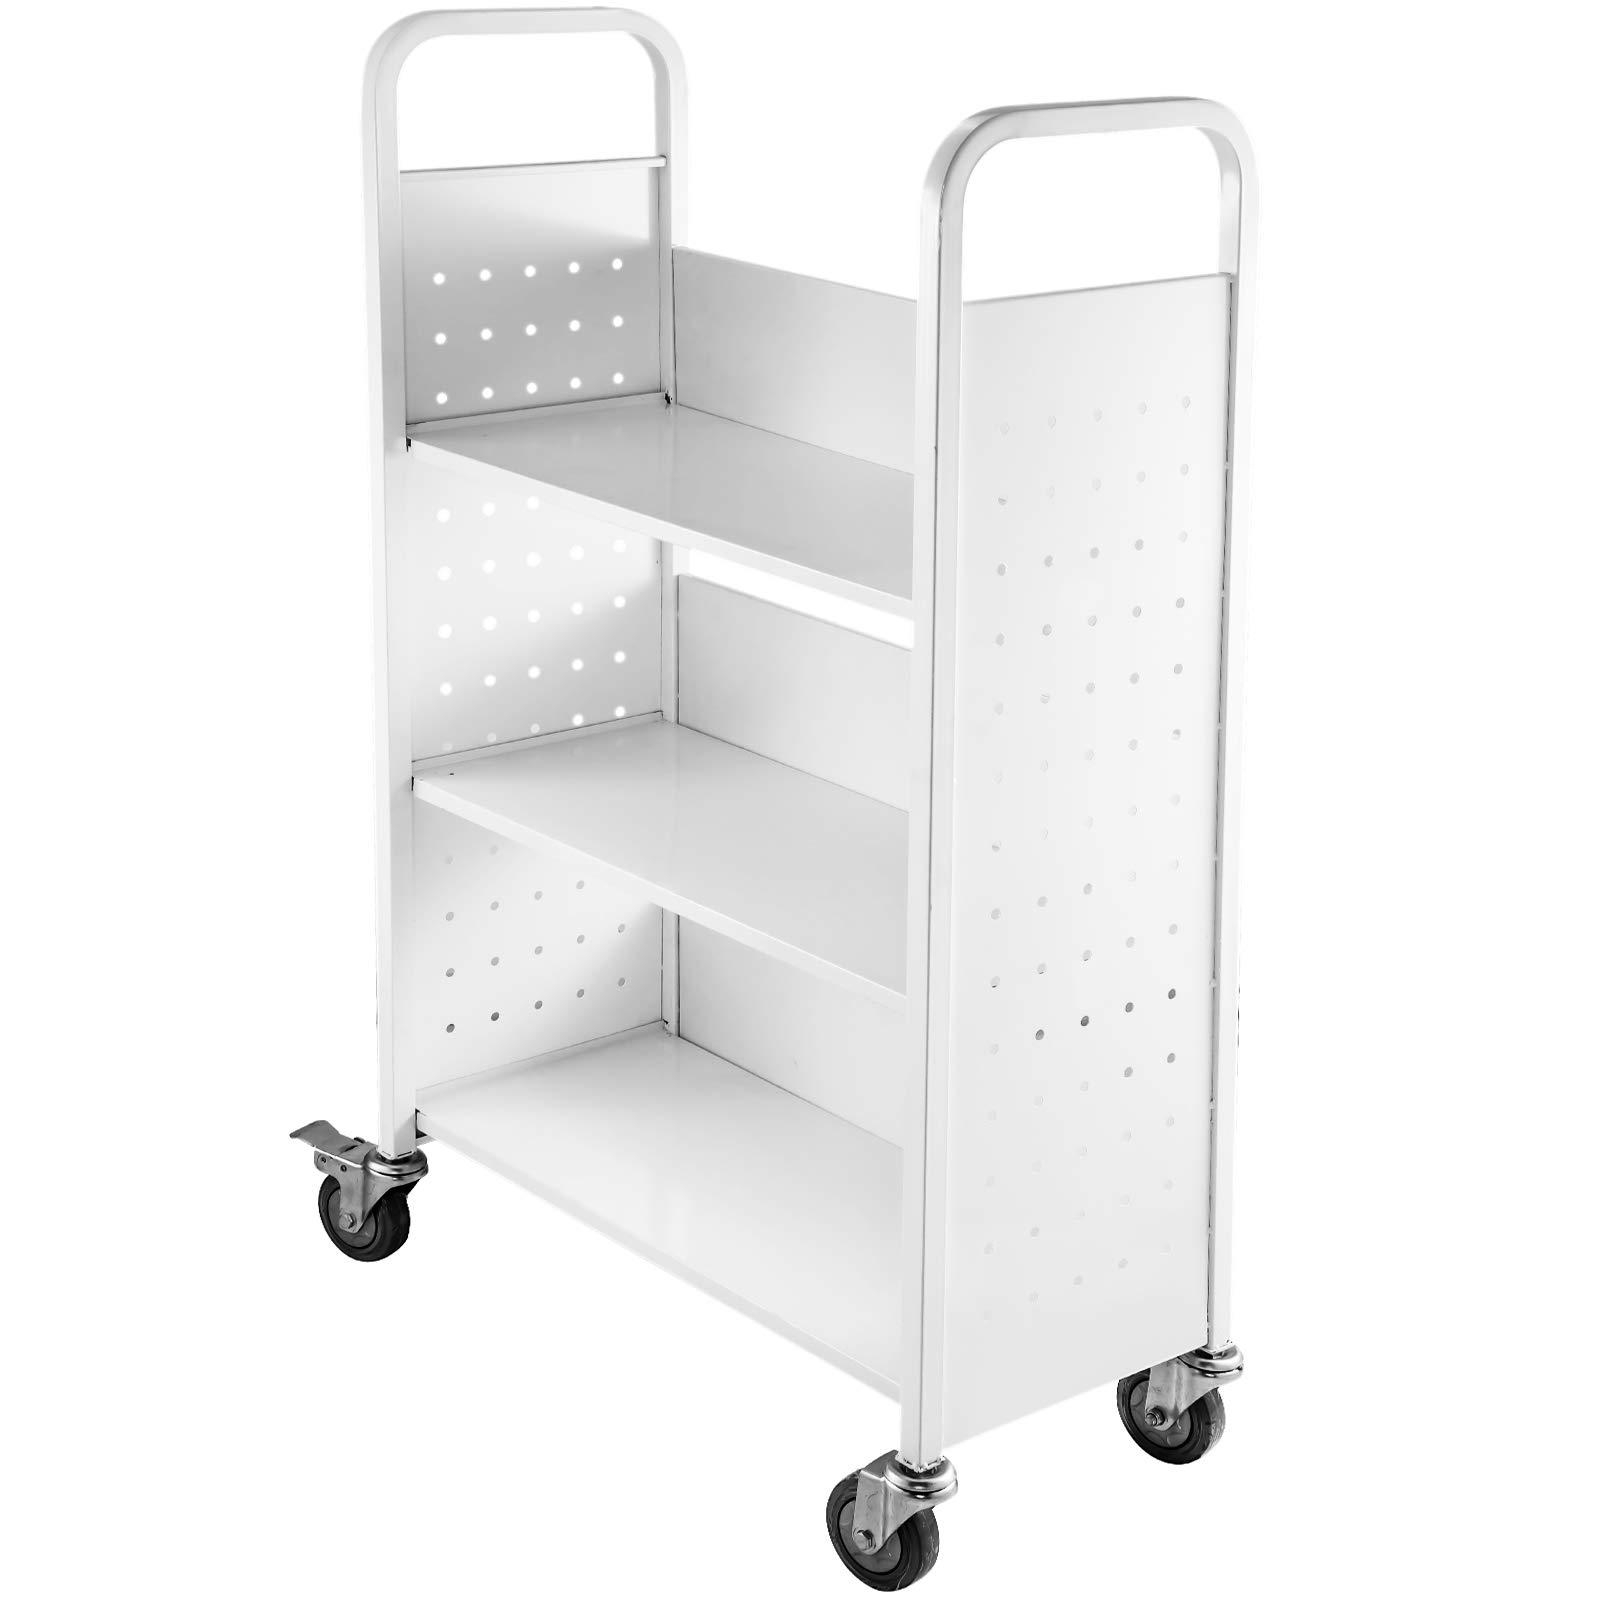 BestEquip Book Cart 200lbs Library Cart 30x14x45 Inch Rolling Book Cart with L-Shaped Flat Shelves and 4 Inch Lockable Wheels Welded Steel for Home Shelves Office and School Book Truck in White by BestEquip